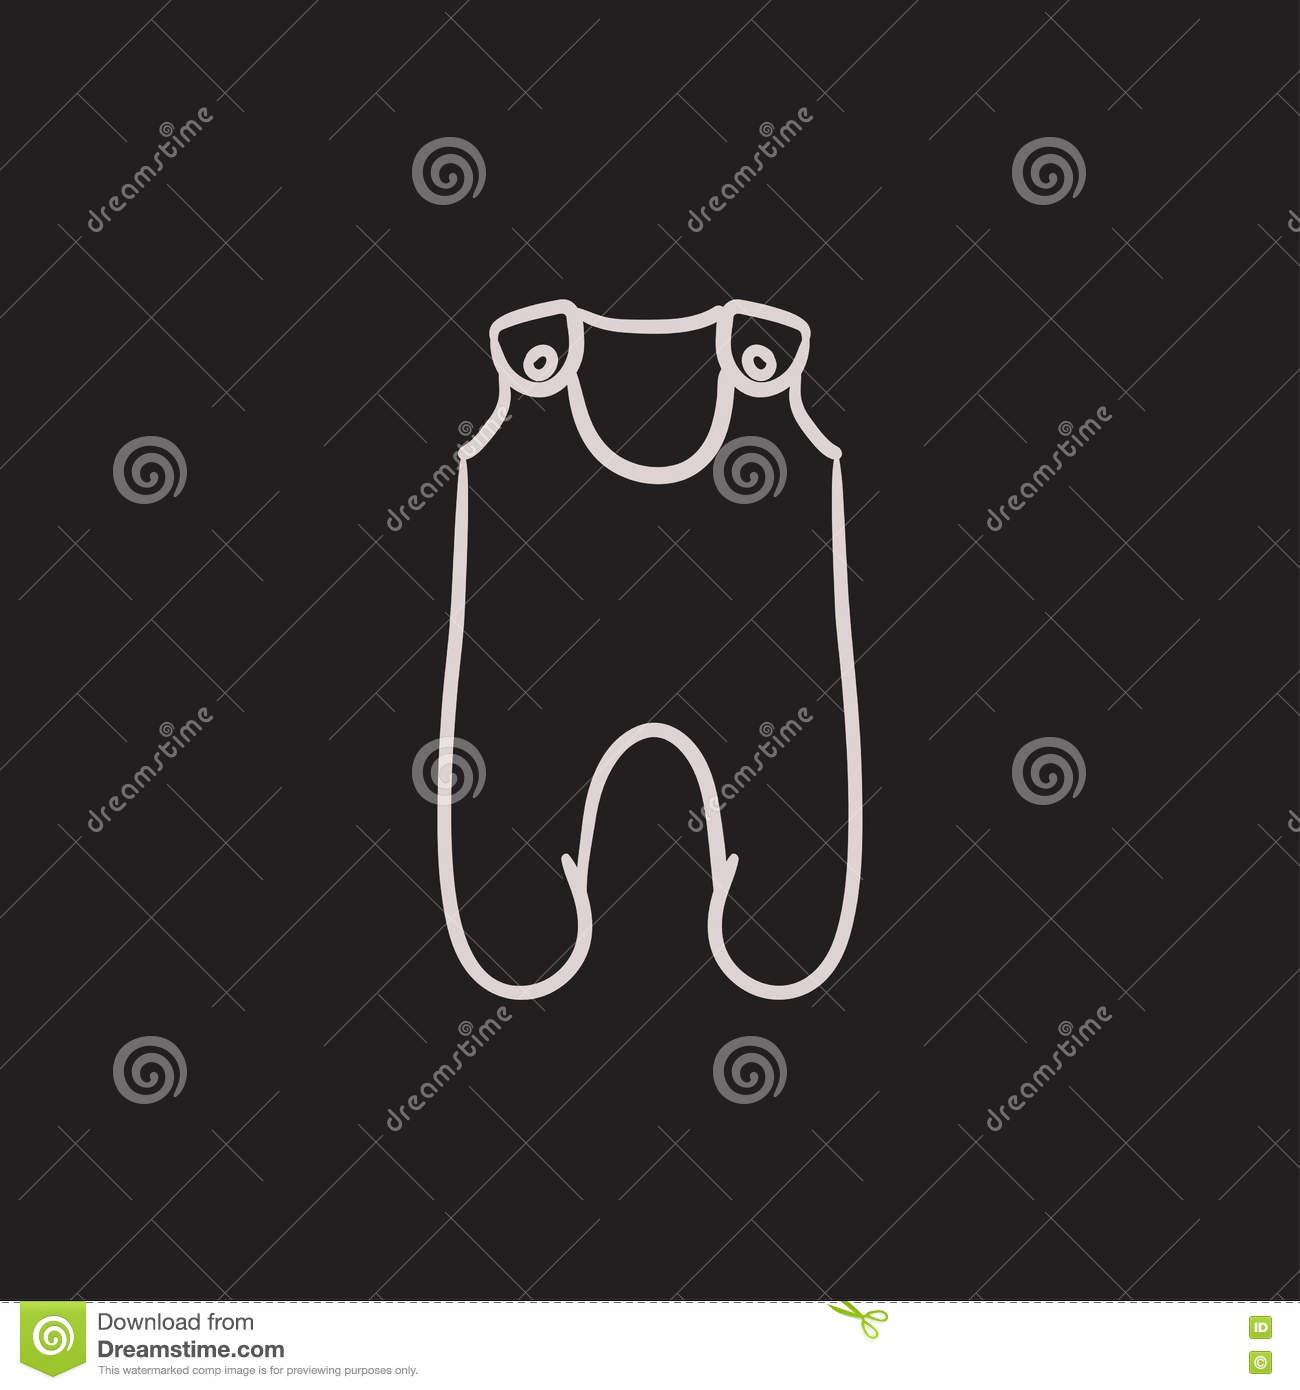 6858dc5dcec7 Baby romper sketch icon. stock vector. Illustration of cotton - 78163479